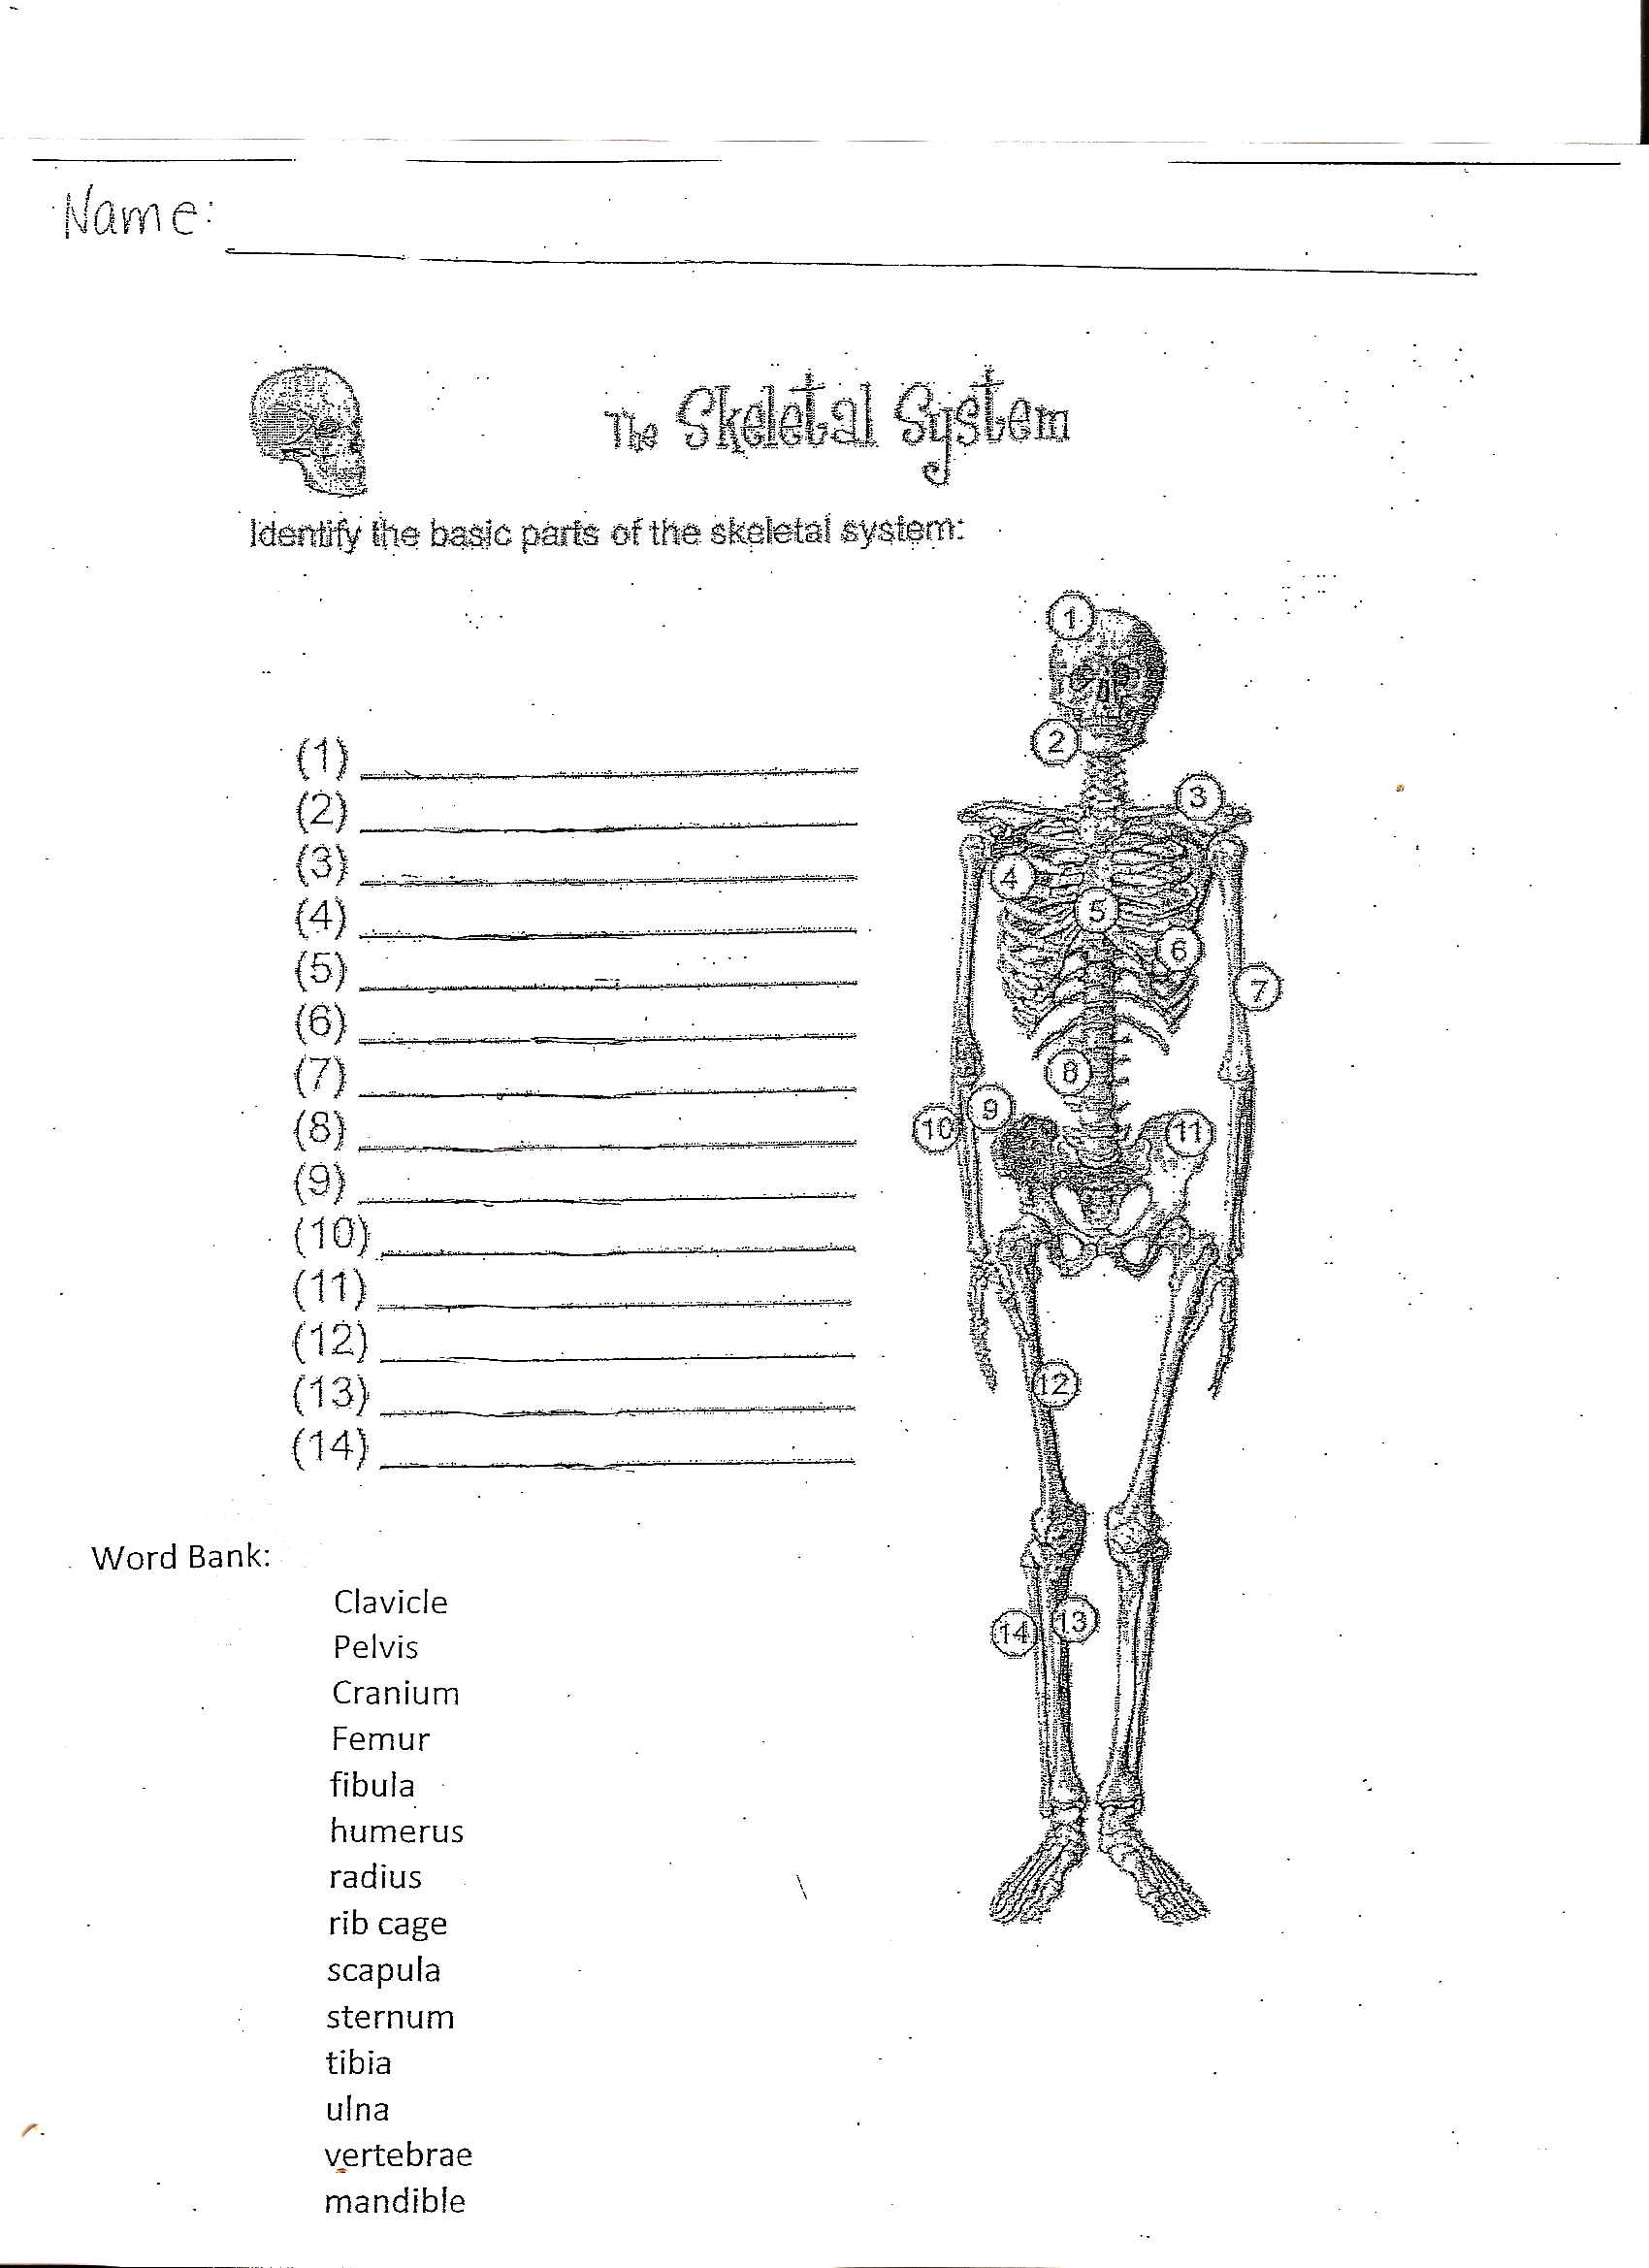 skeletal system worksheet worksheets releaseboard free printable worksheets and activities. Black Bedroom Furniture Sets. Home Design Ideas